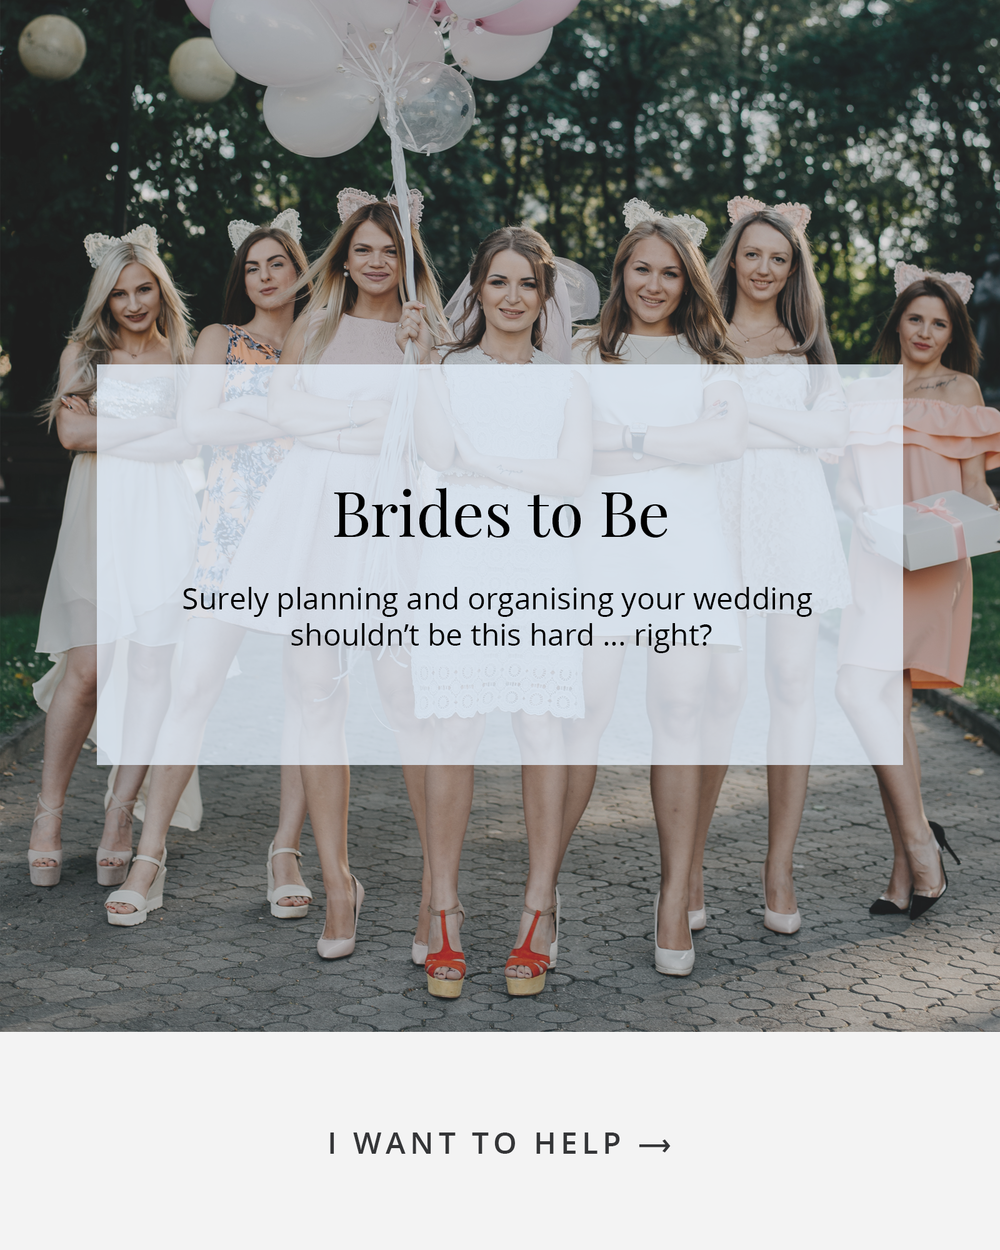 Bride holding pink balloons with her six bridemaids beside her - bride tribe - surely planning your wedding shouldn't be this hard, I want to help